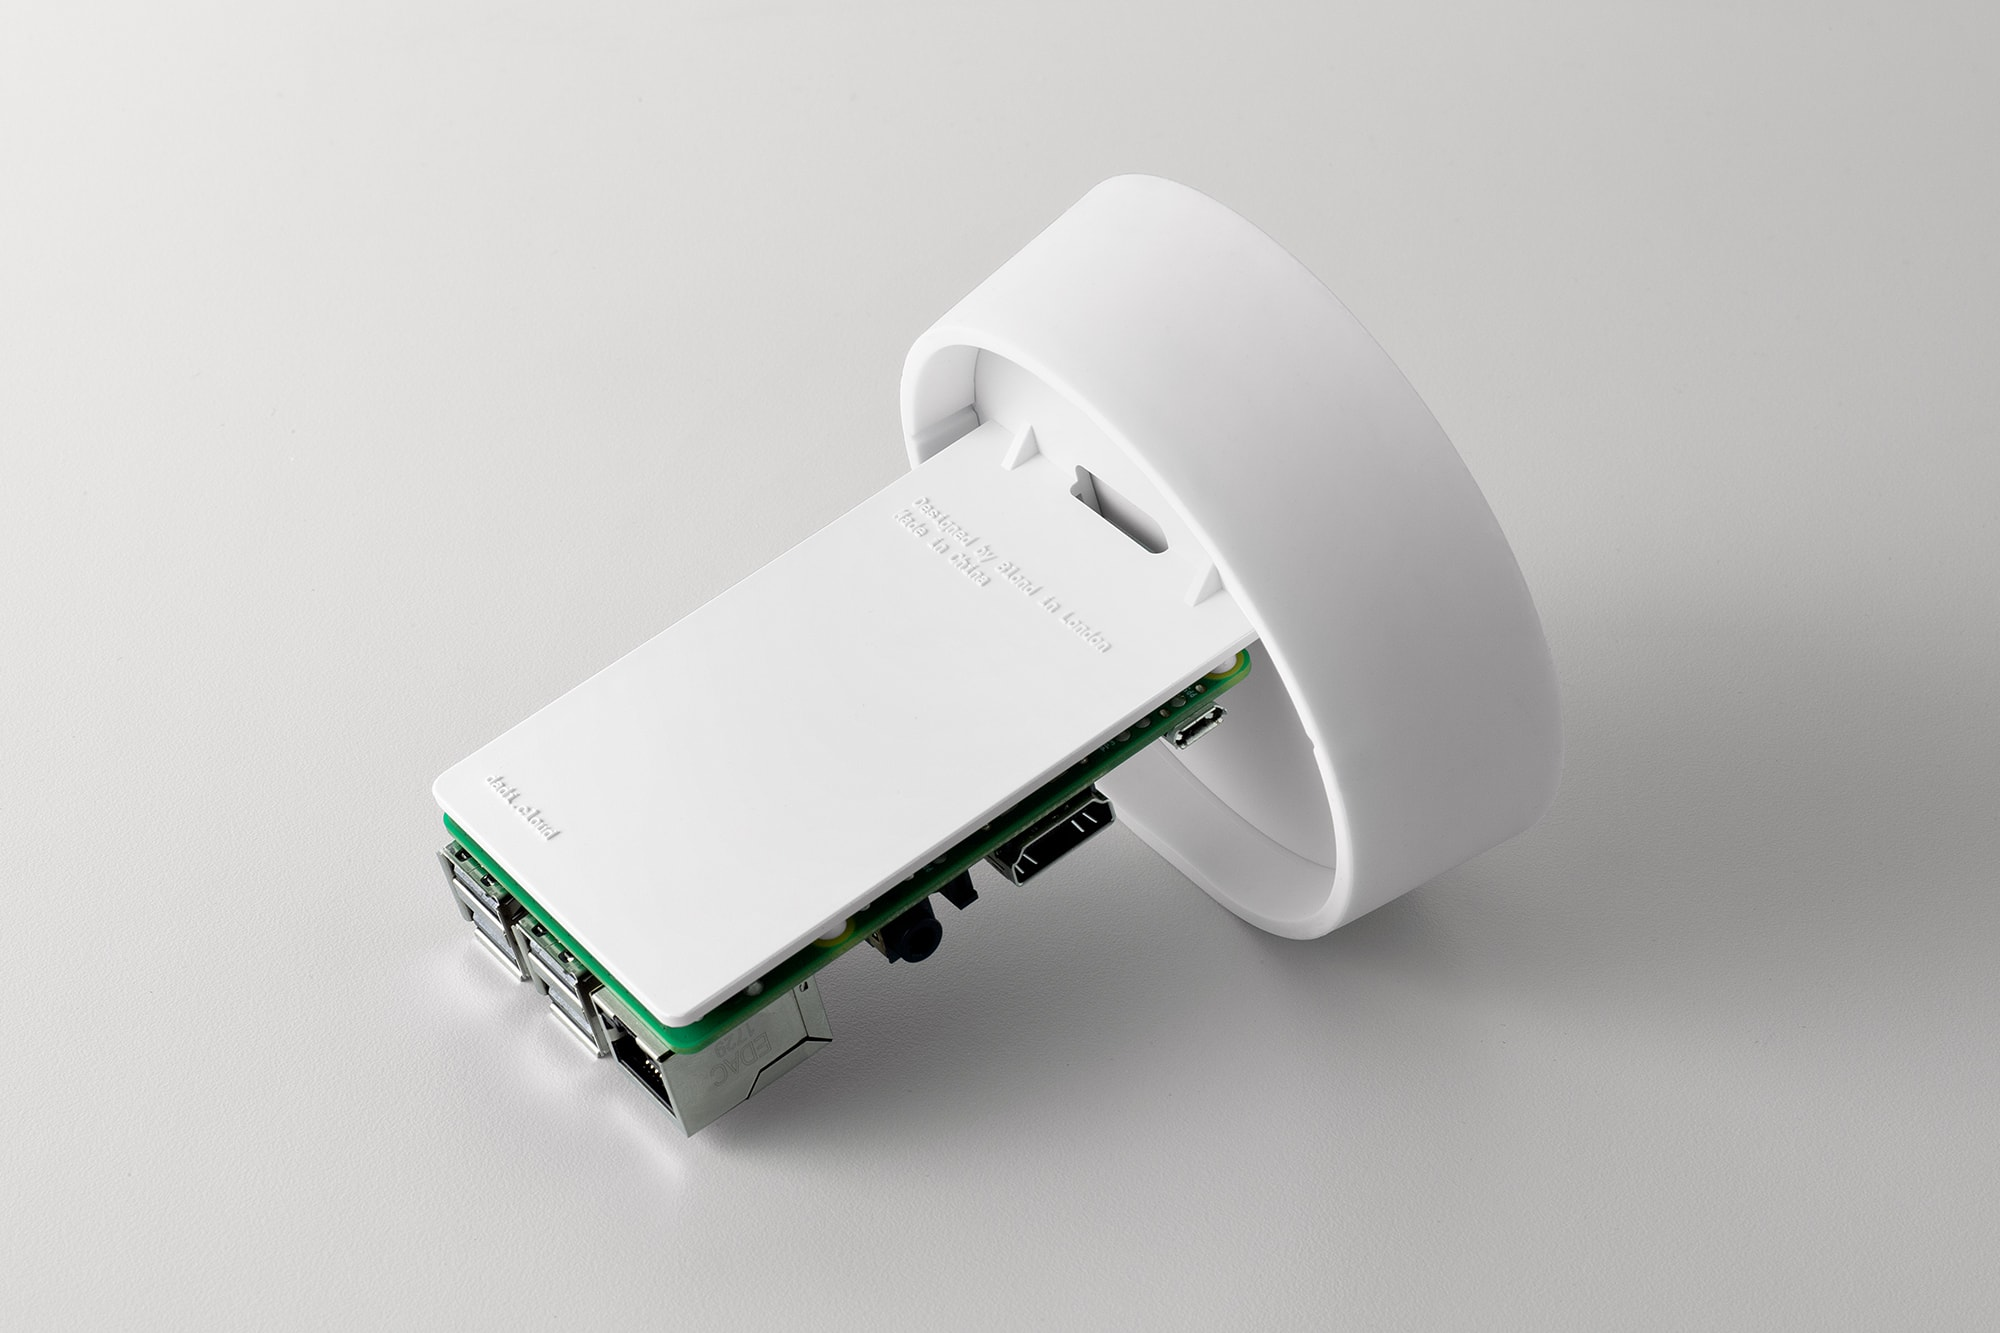 Perspective view of the top of the DADI Founding Node. The image shows a white silicone top, attached to the top is a plastic component which has a Raspberry Pi circuit board mounted on to it.